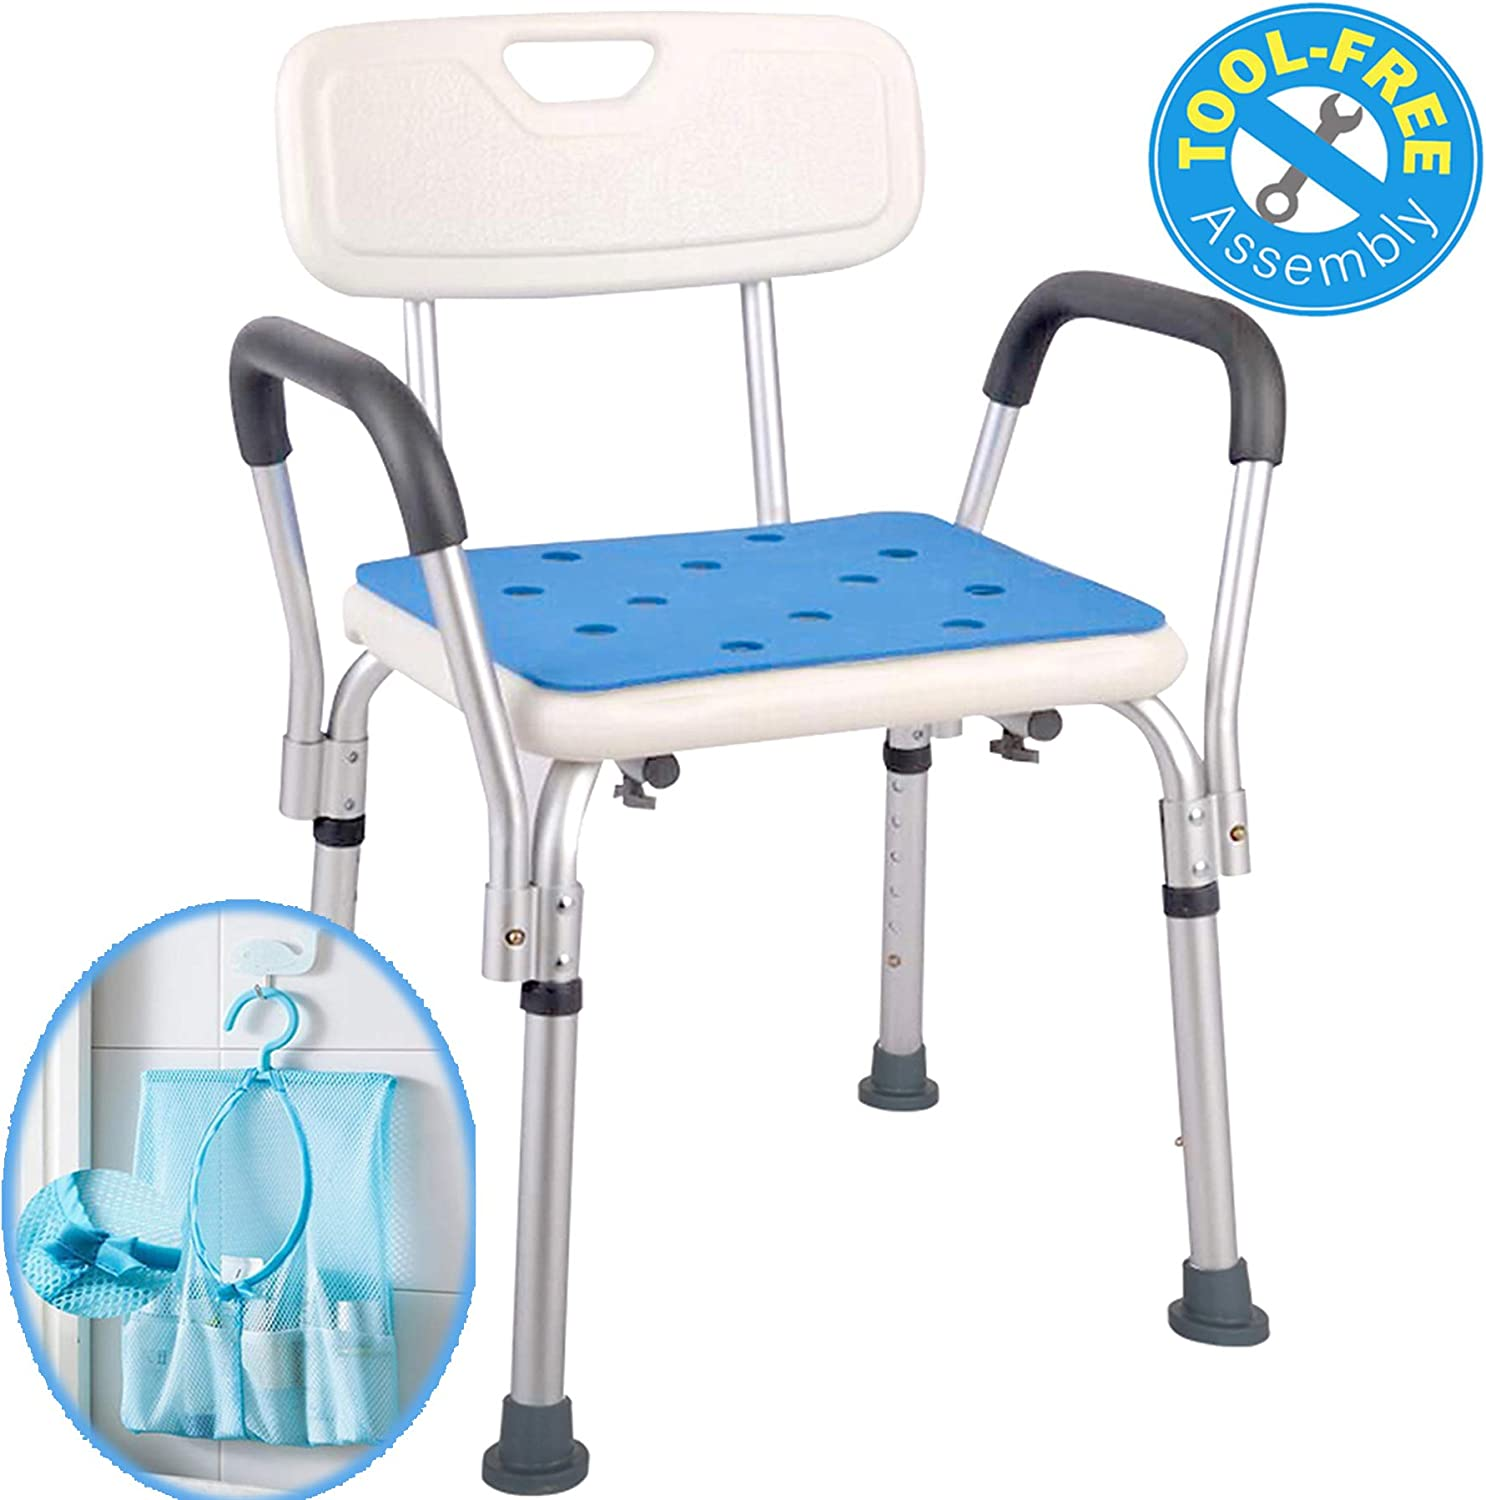 Medokare Shower Chair with Rails - Shower Seat